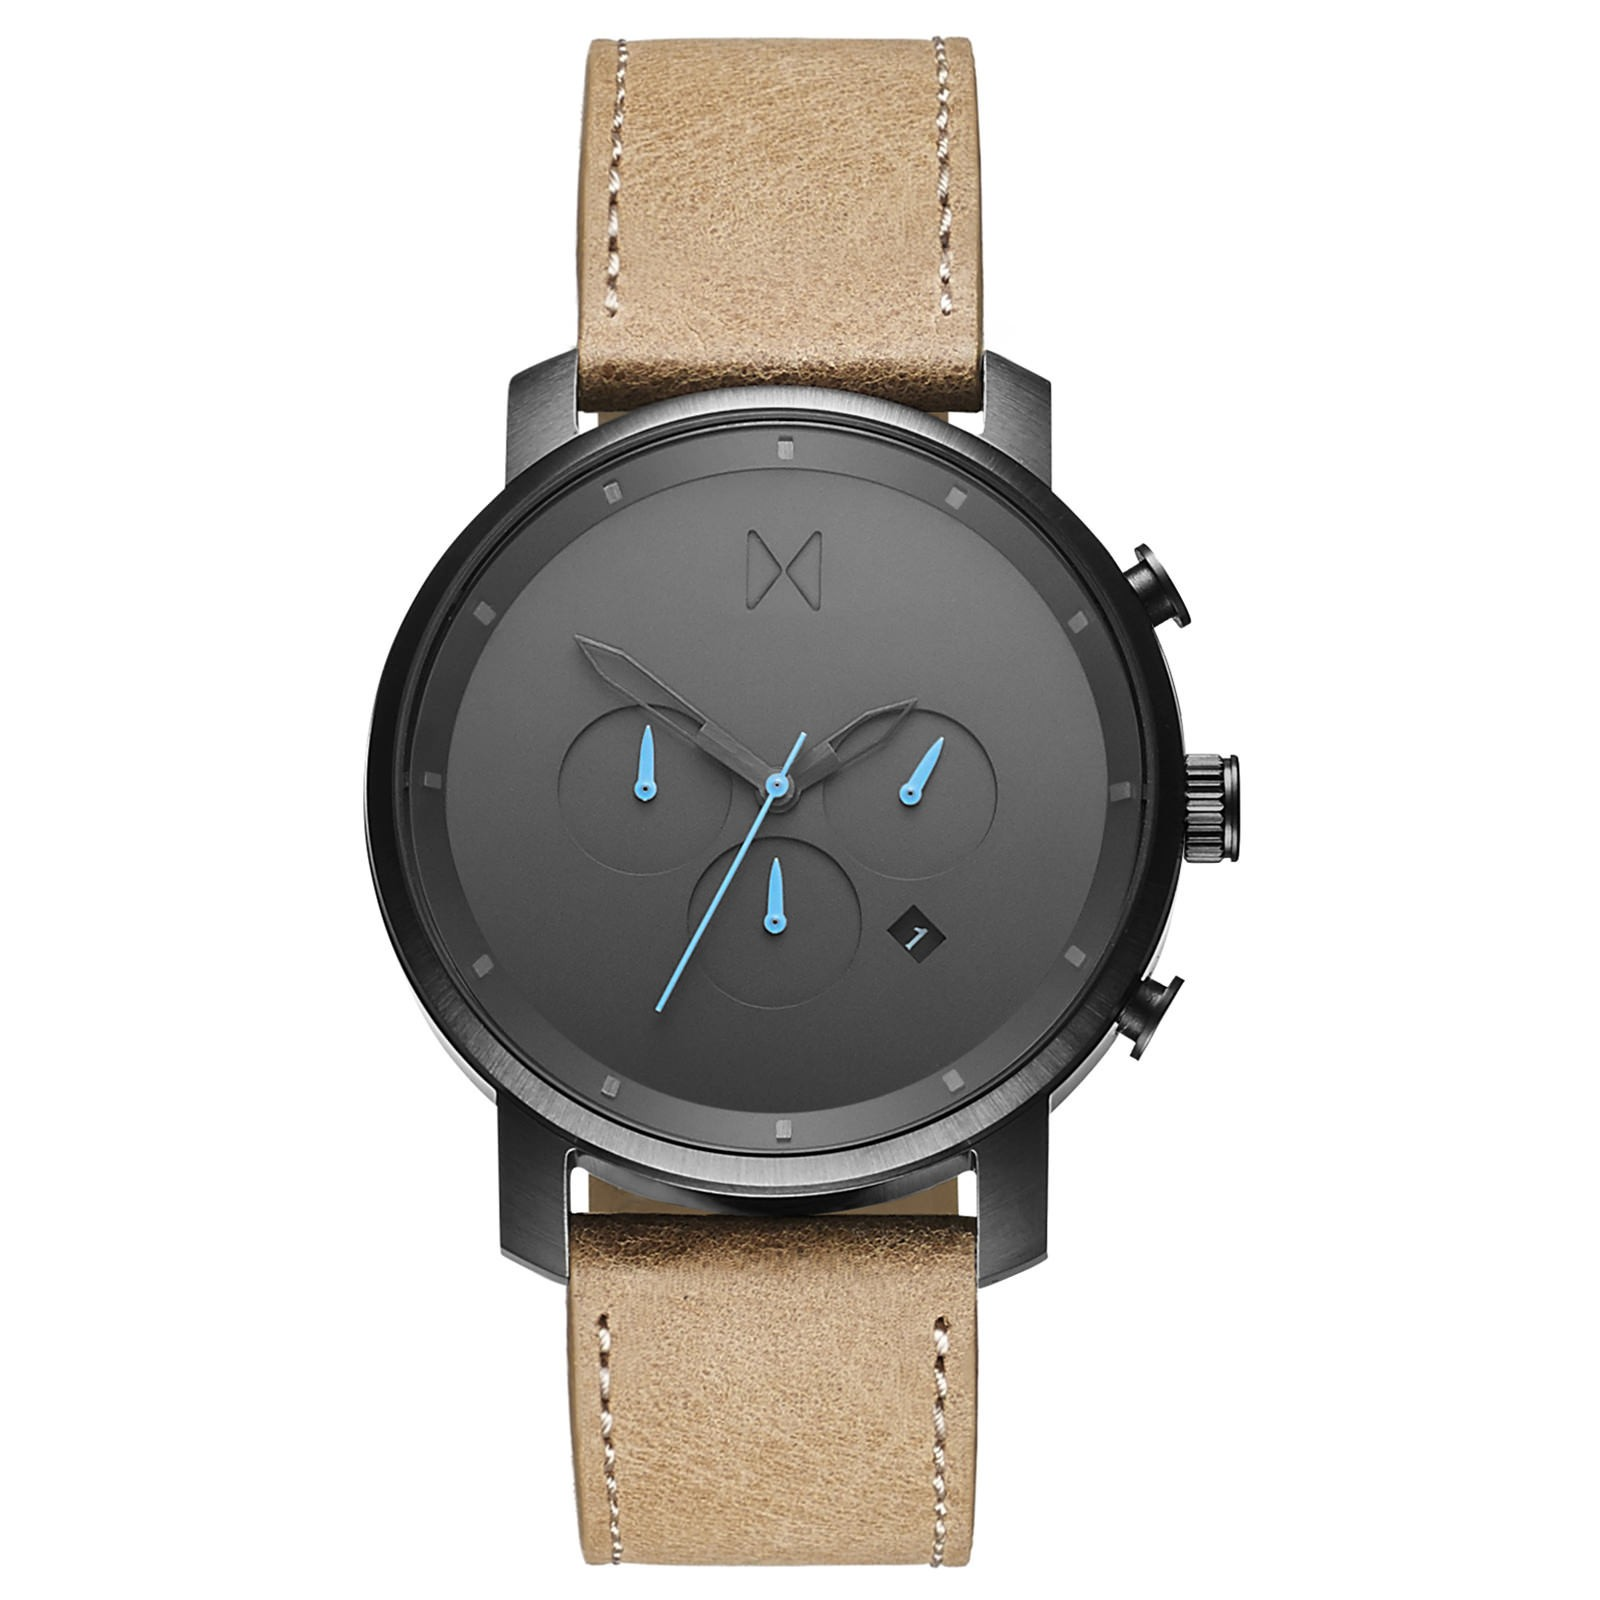 MVMT Chrono Gunmetal/Sandstone Leather-30